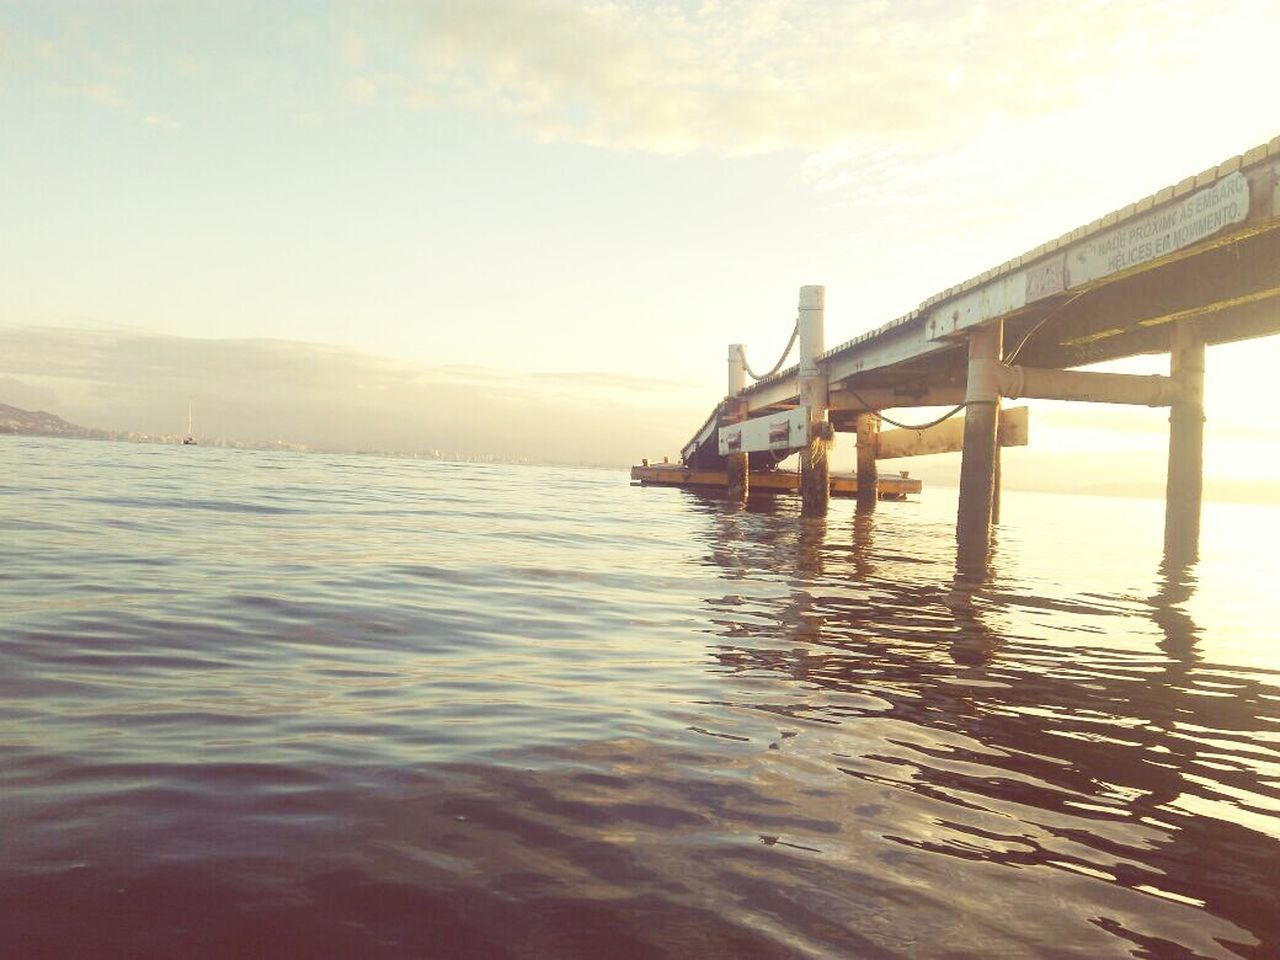 water, sky, built structure, sunset, sea, outdoors, transportation, architecture, no people, nature, beauty in nature, day